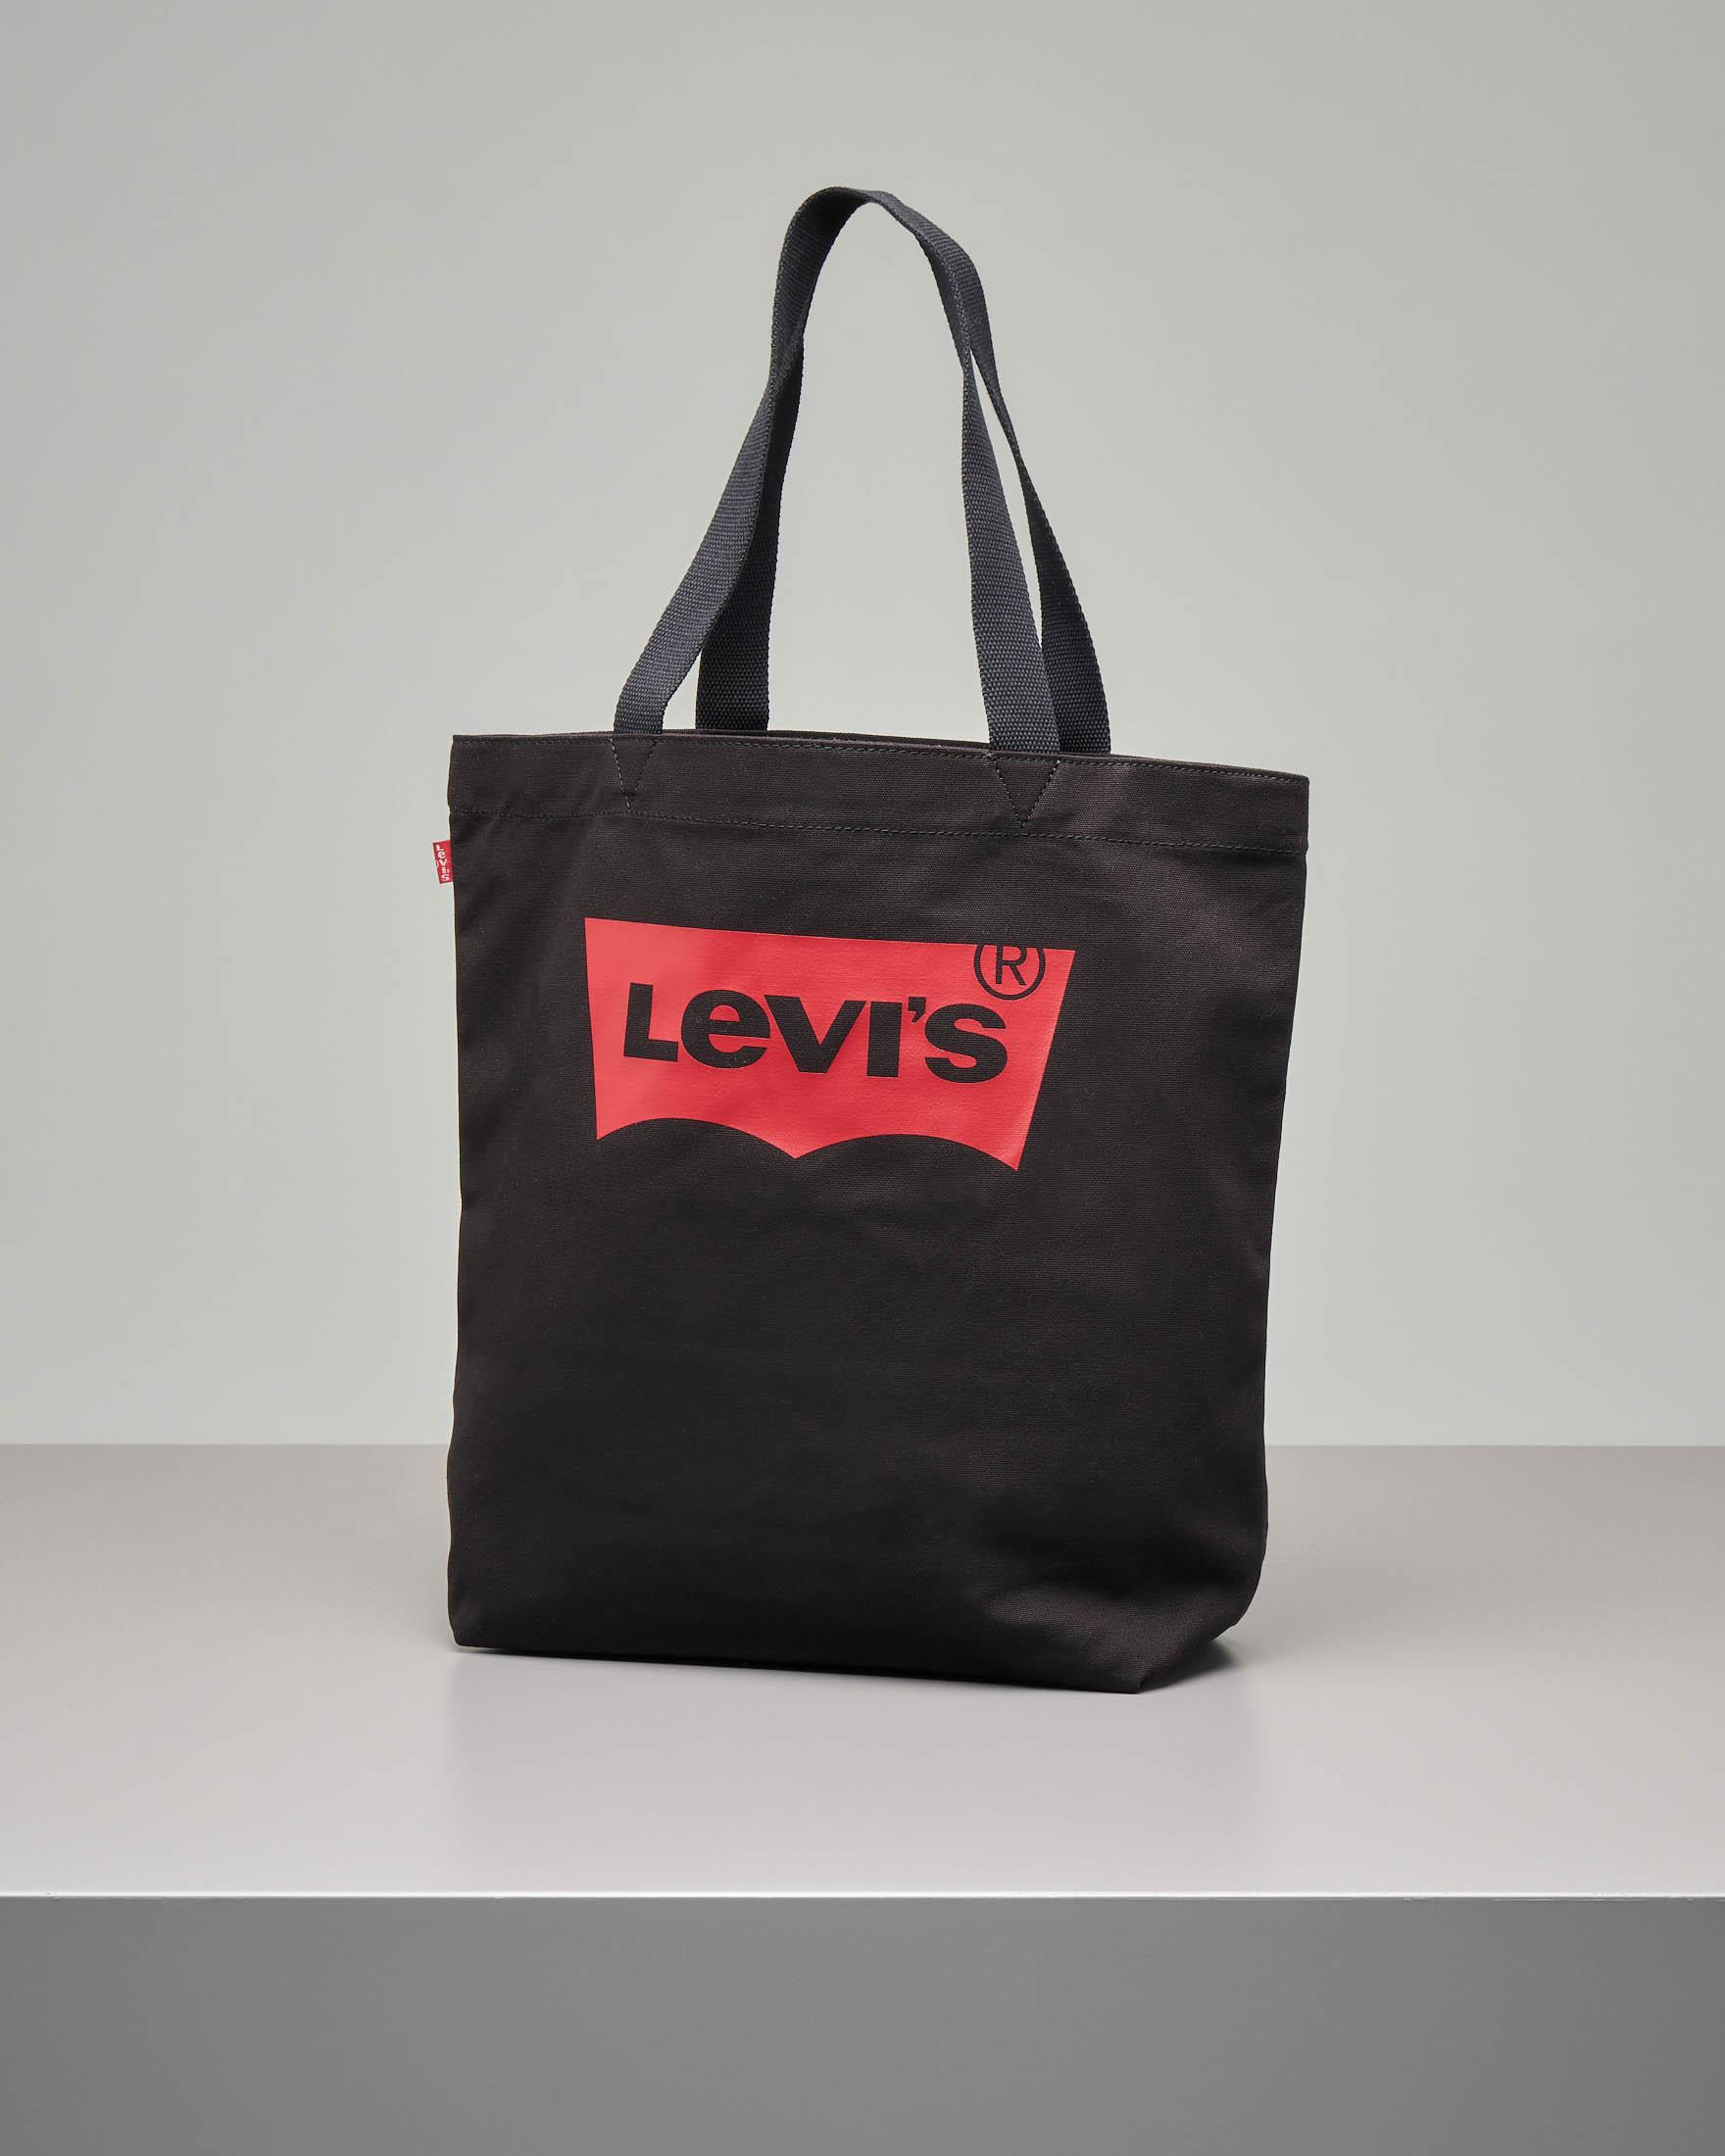 Shopping bag in cavass nera con batwing rosso stampata